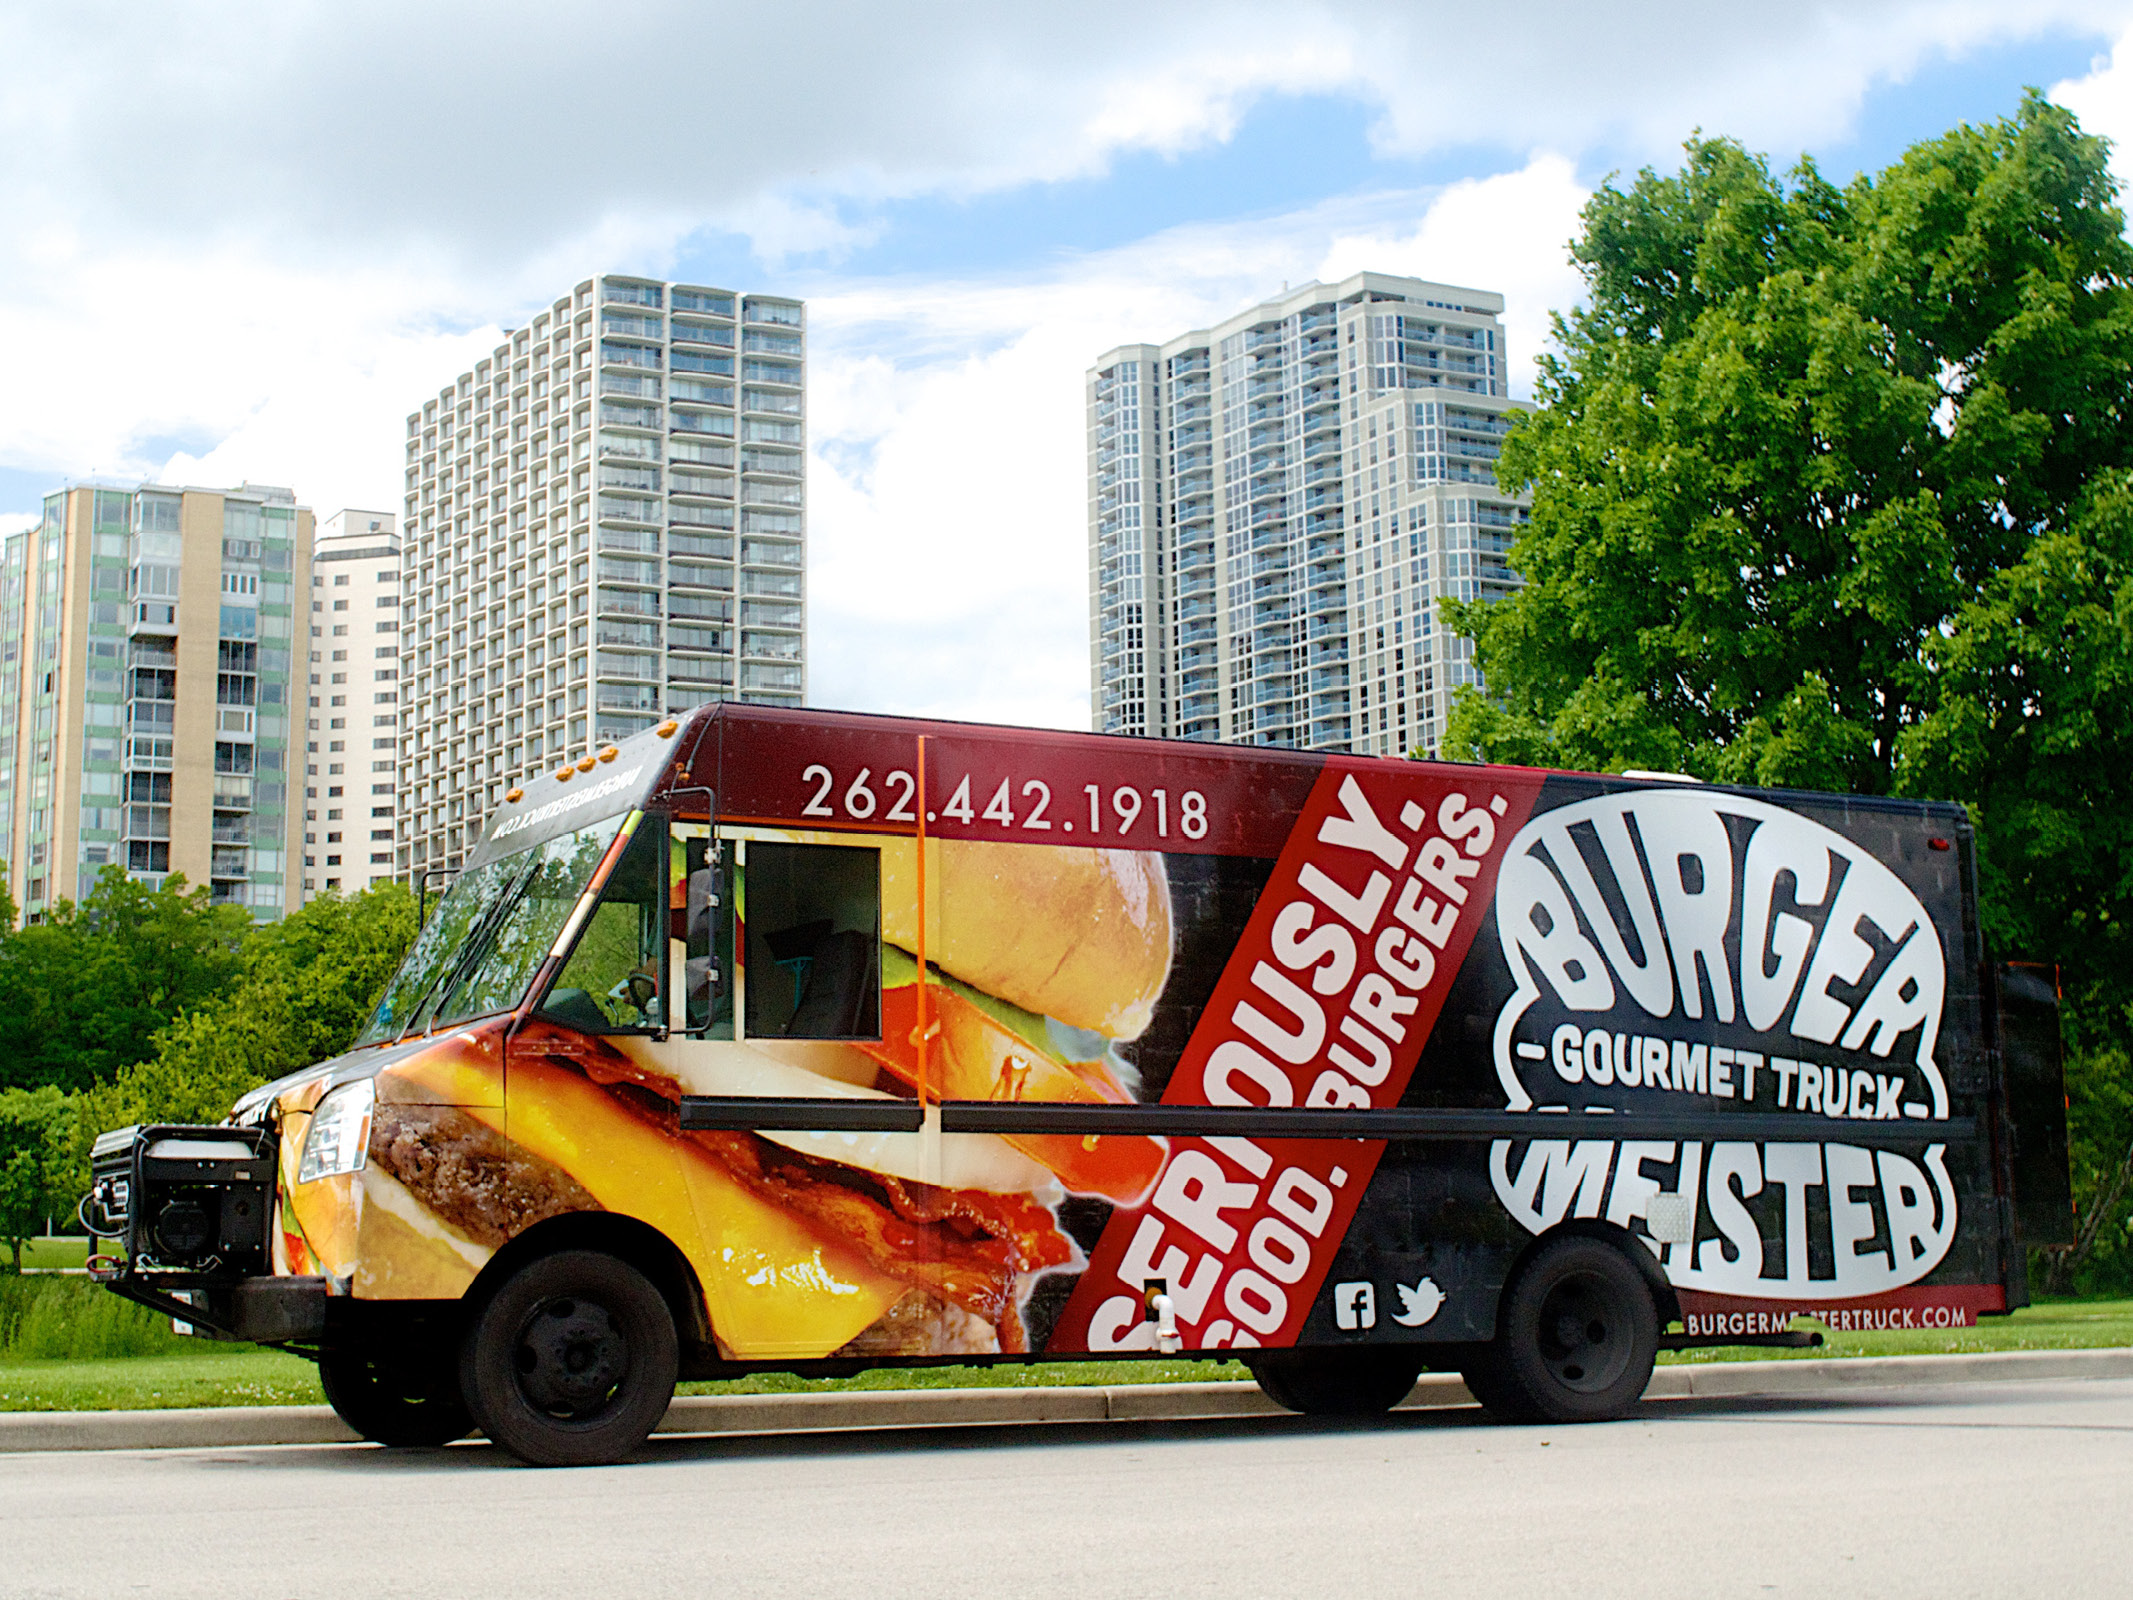 Full Truck Graphic Wrap, Logo, Branding, Art Direction,and Photography